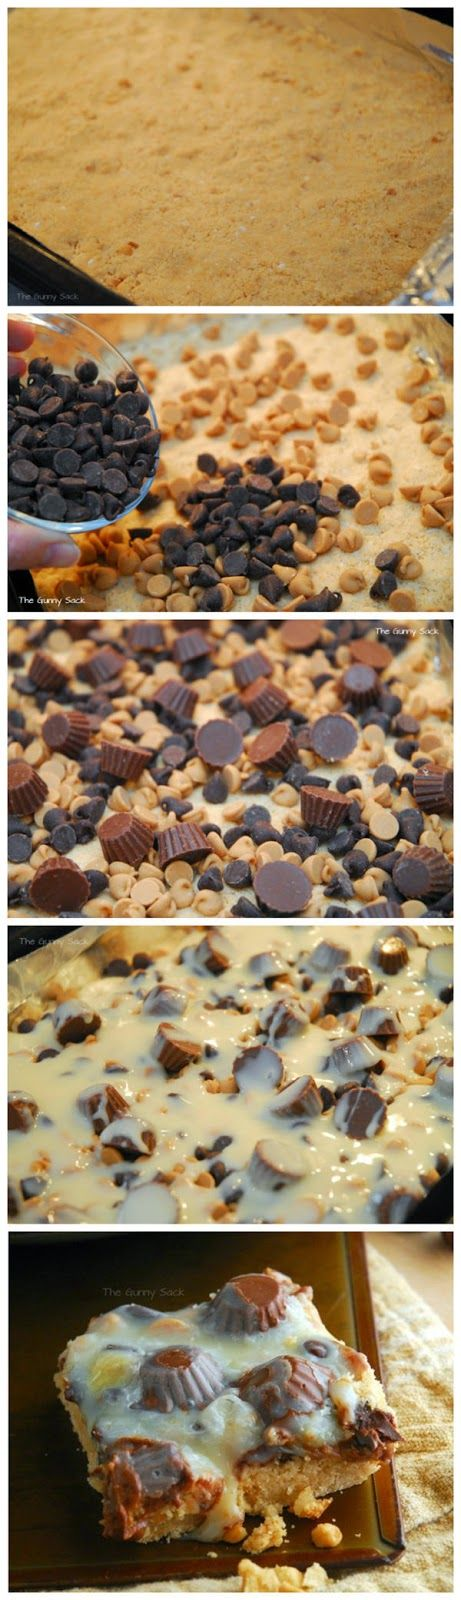 Reese's Peanut Butter Cup Cookie Bars...I might try it with a chocolate cake mix instead of vanilla!